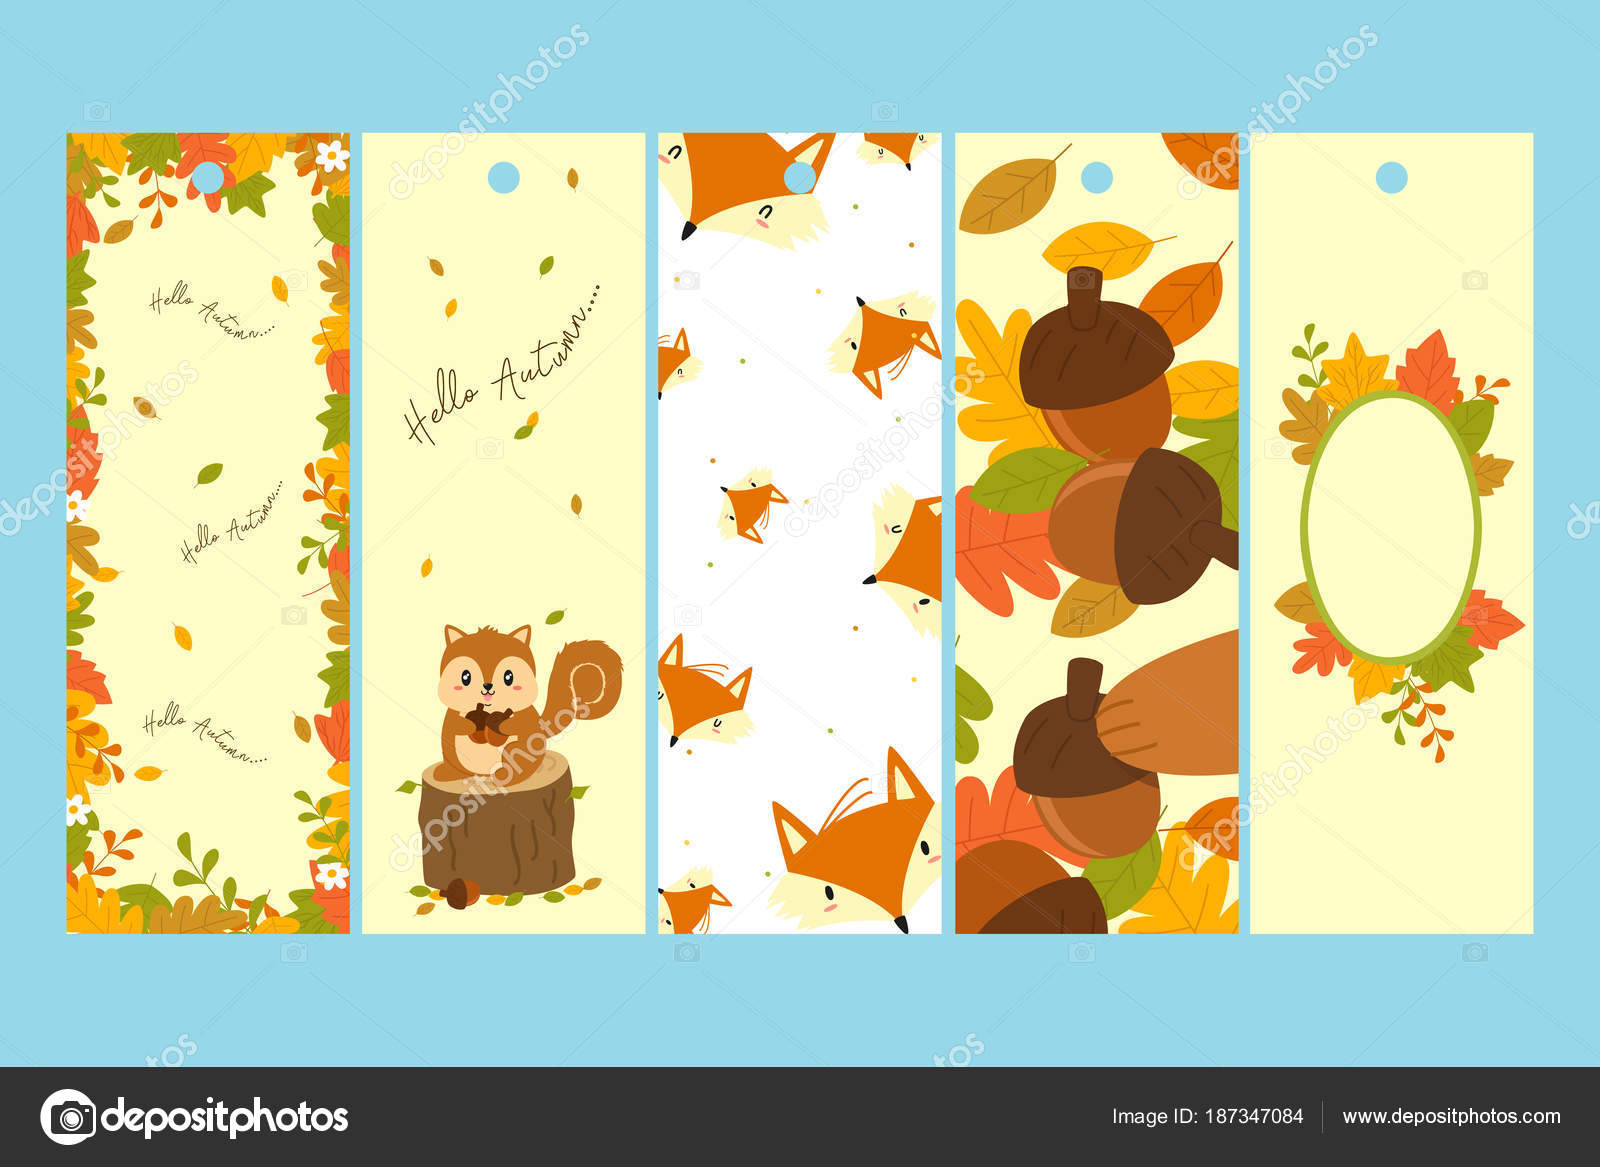 graphic regarding Printable Bookmark Template named Autumn Figures Products and solutions Bookmark Template Preset Printable